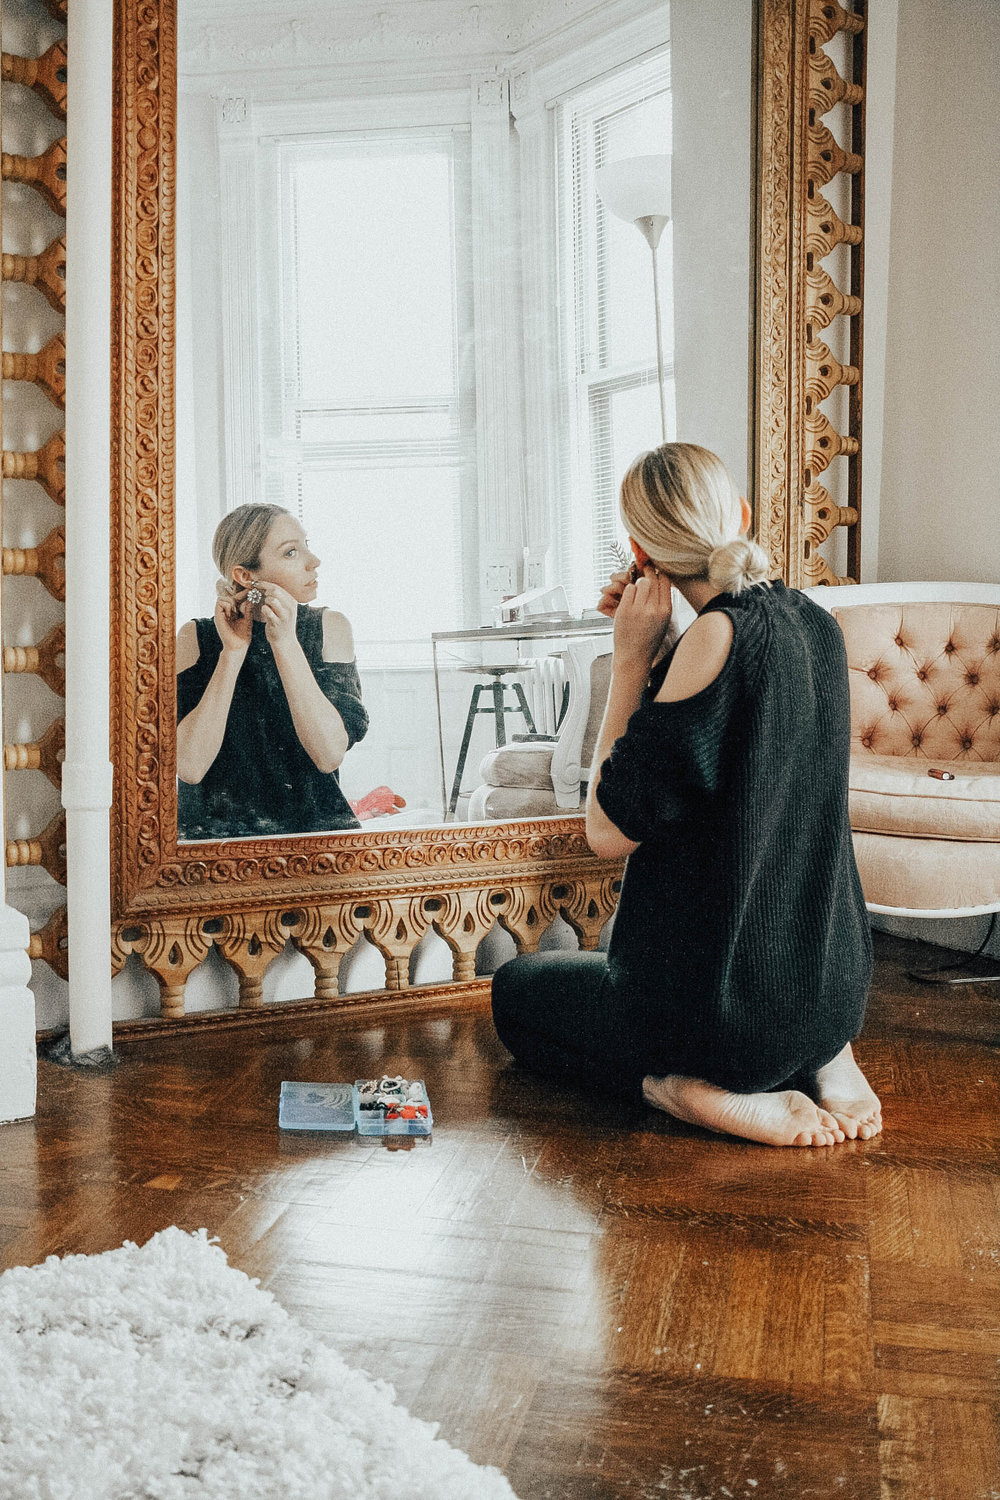 How To Get Ready Quickly | @maevestier